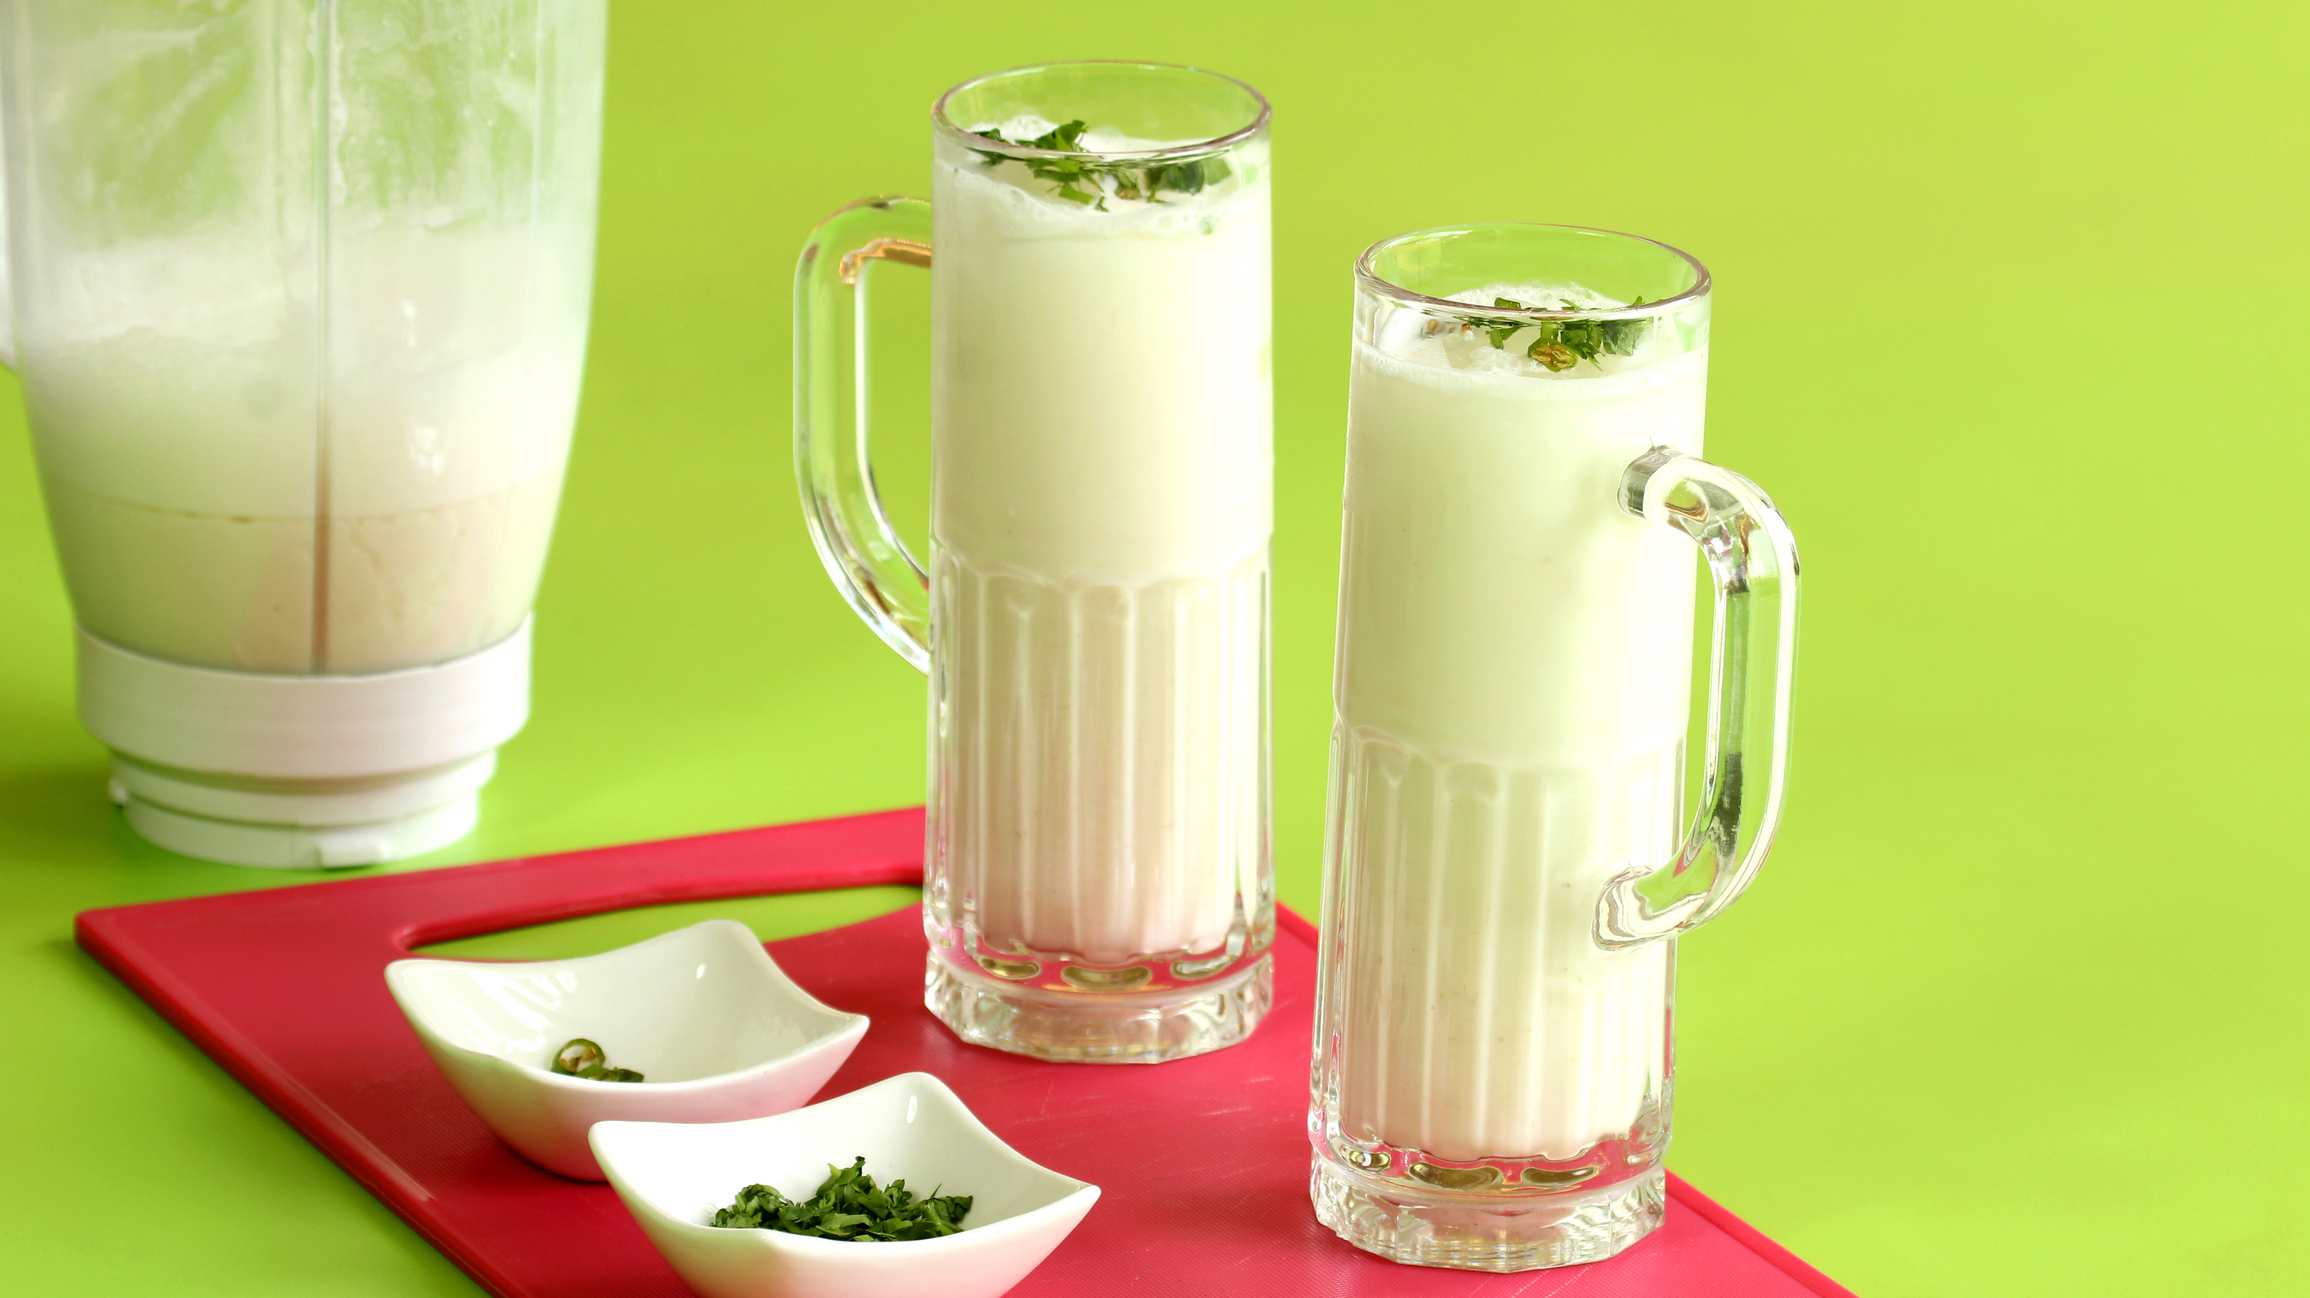 Buttermilk is one of the highly-recommended drinks for summer.